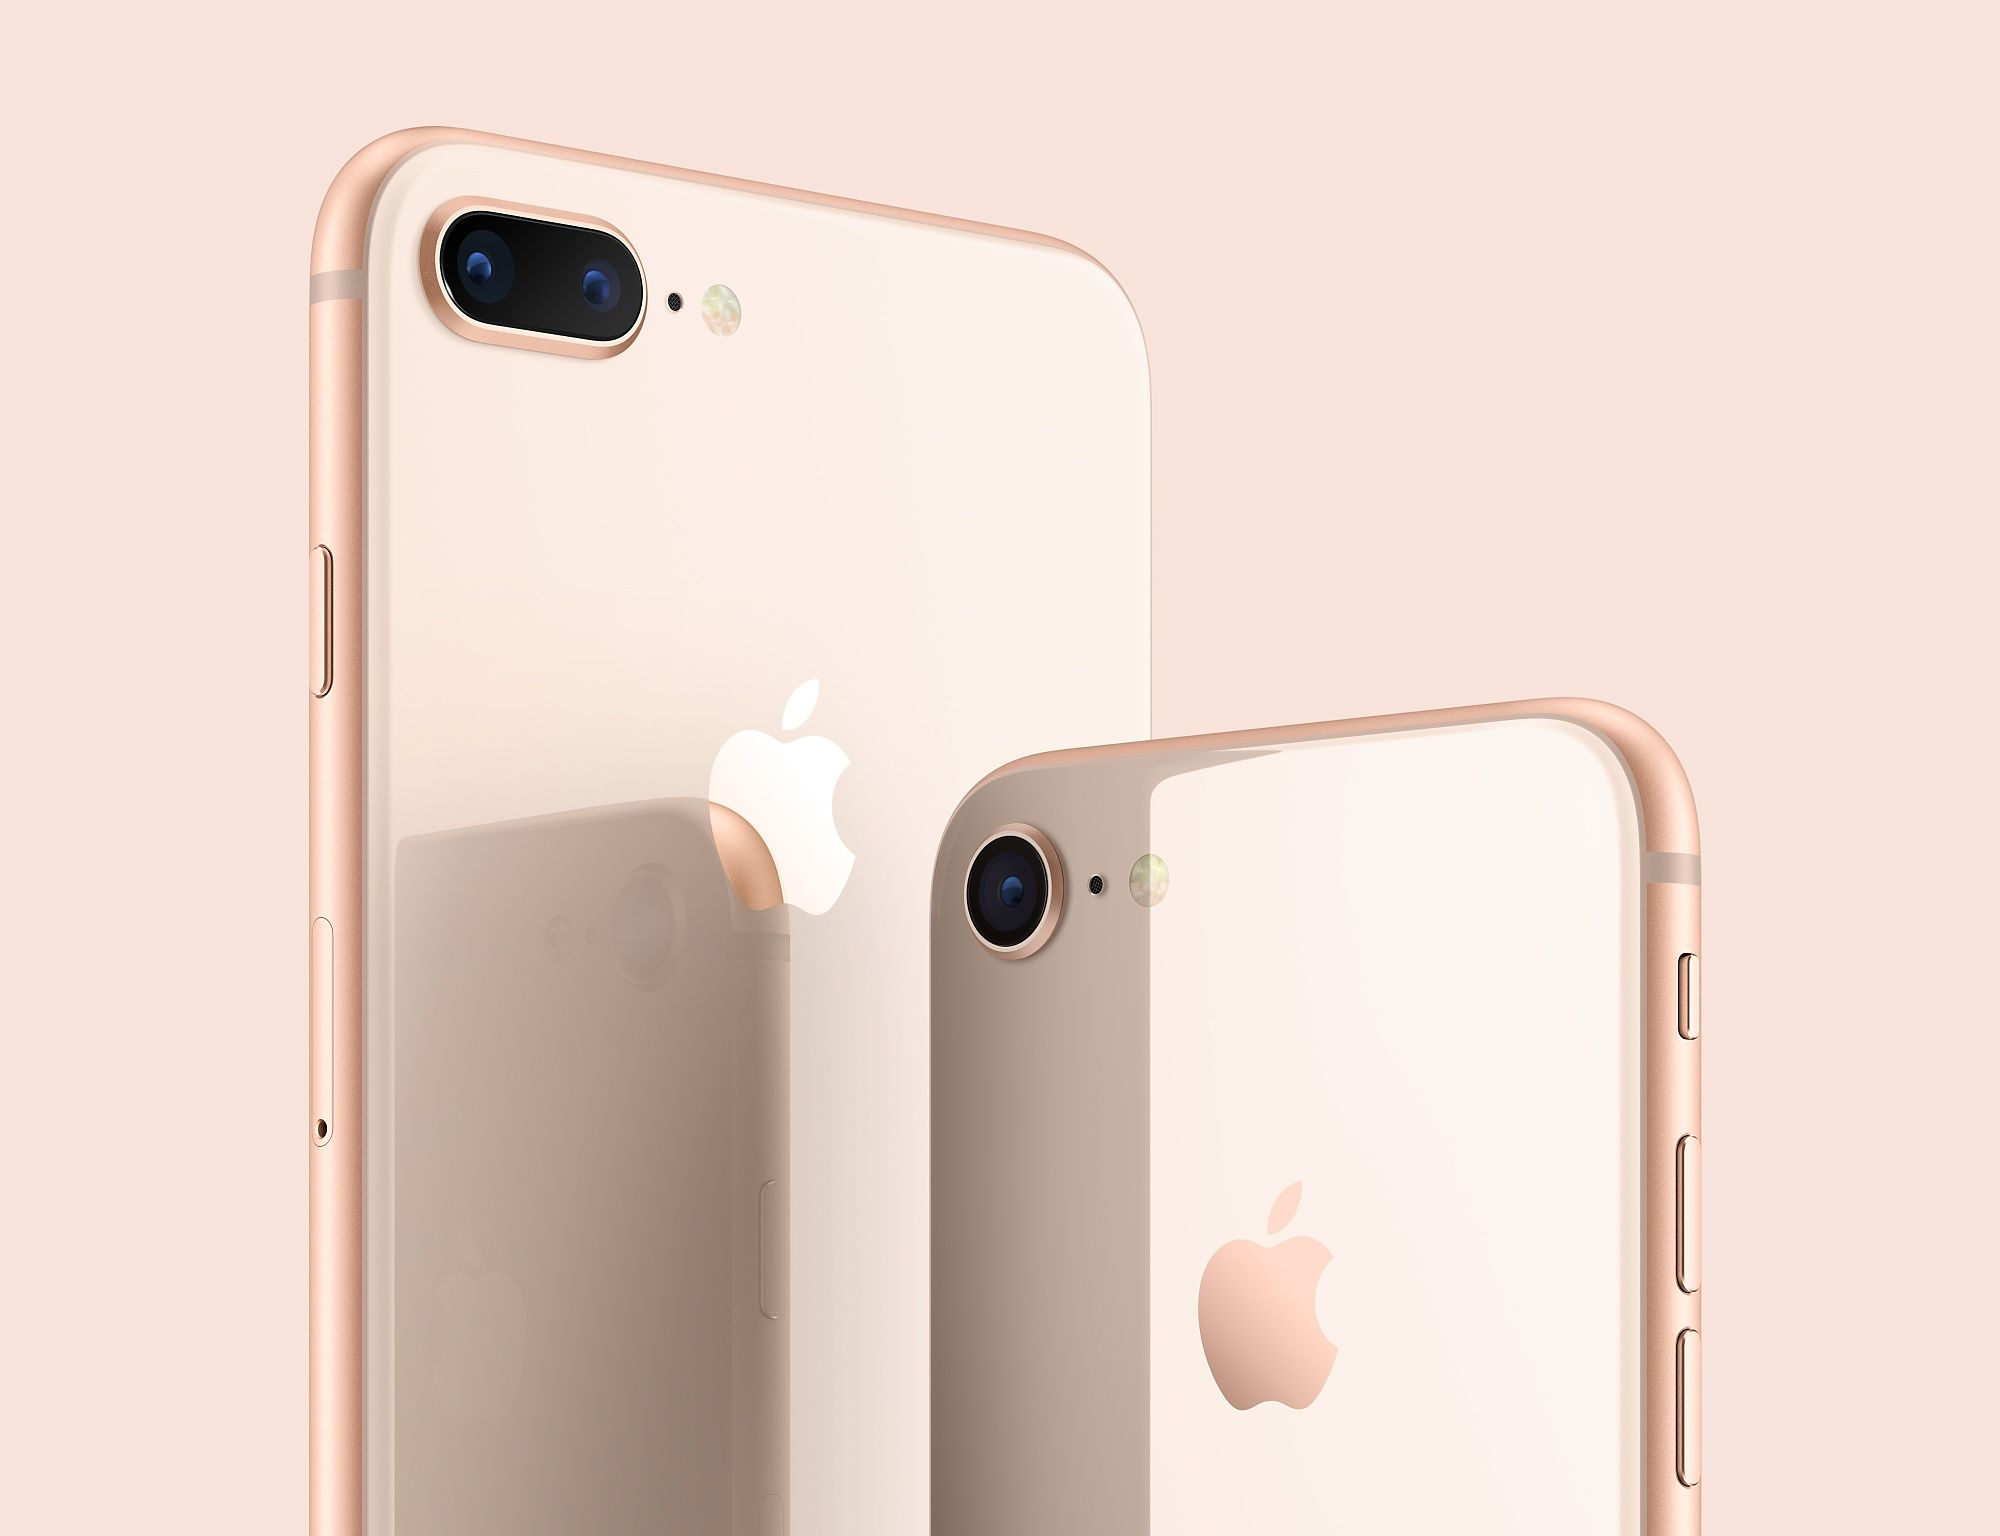 Buy Iphone 8 Or Iphone 8 Plus In Space Gray Silver Or Gold Today Pay In Full Or Pay With Low Monthly Payments Buy Now With Free Iphone Buy Iphone Iphone 8